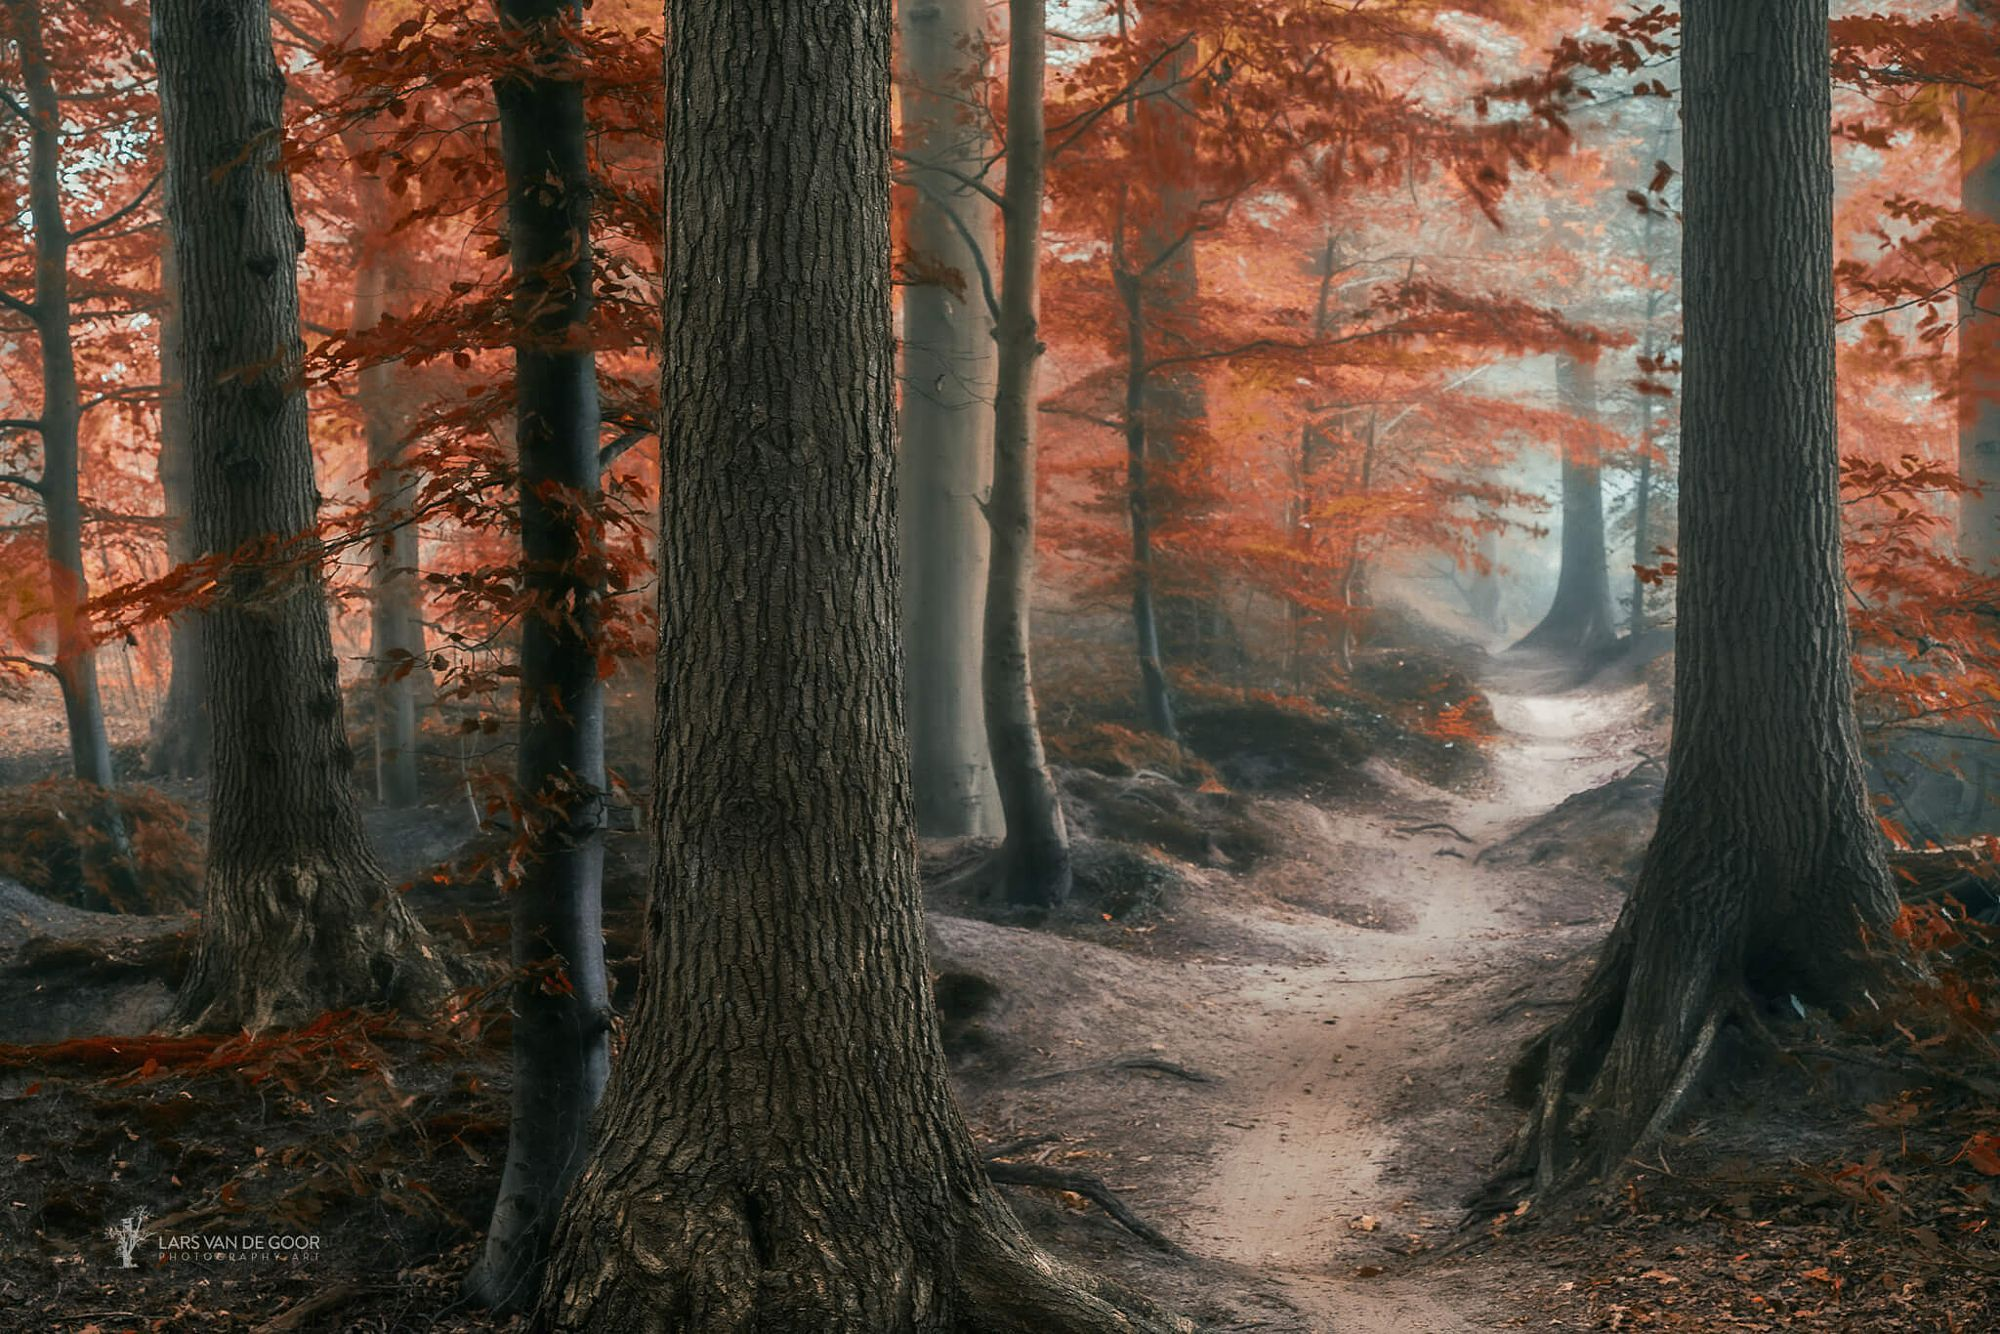 Path of Merdien by Lars van de Goor on 500px